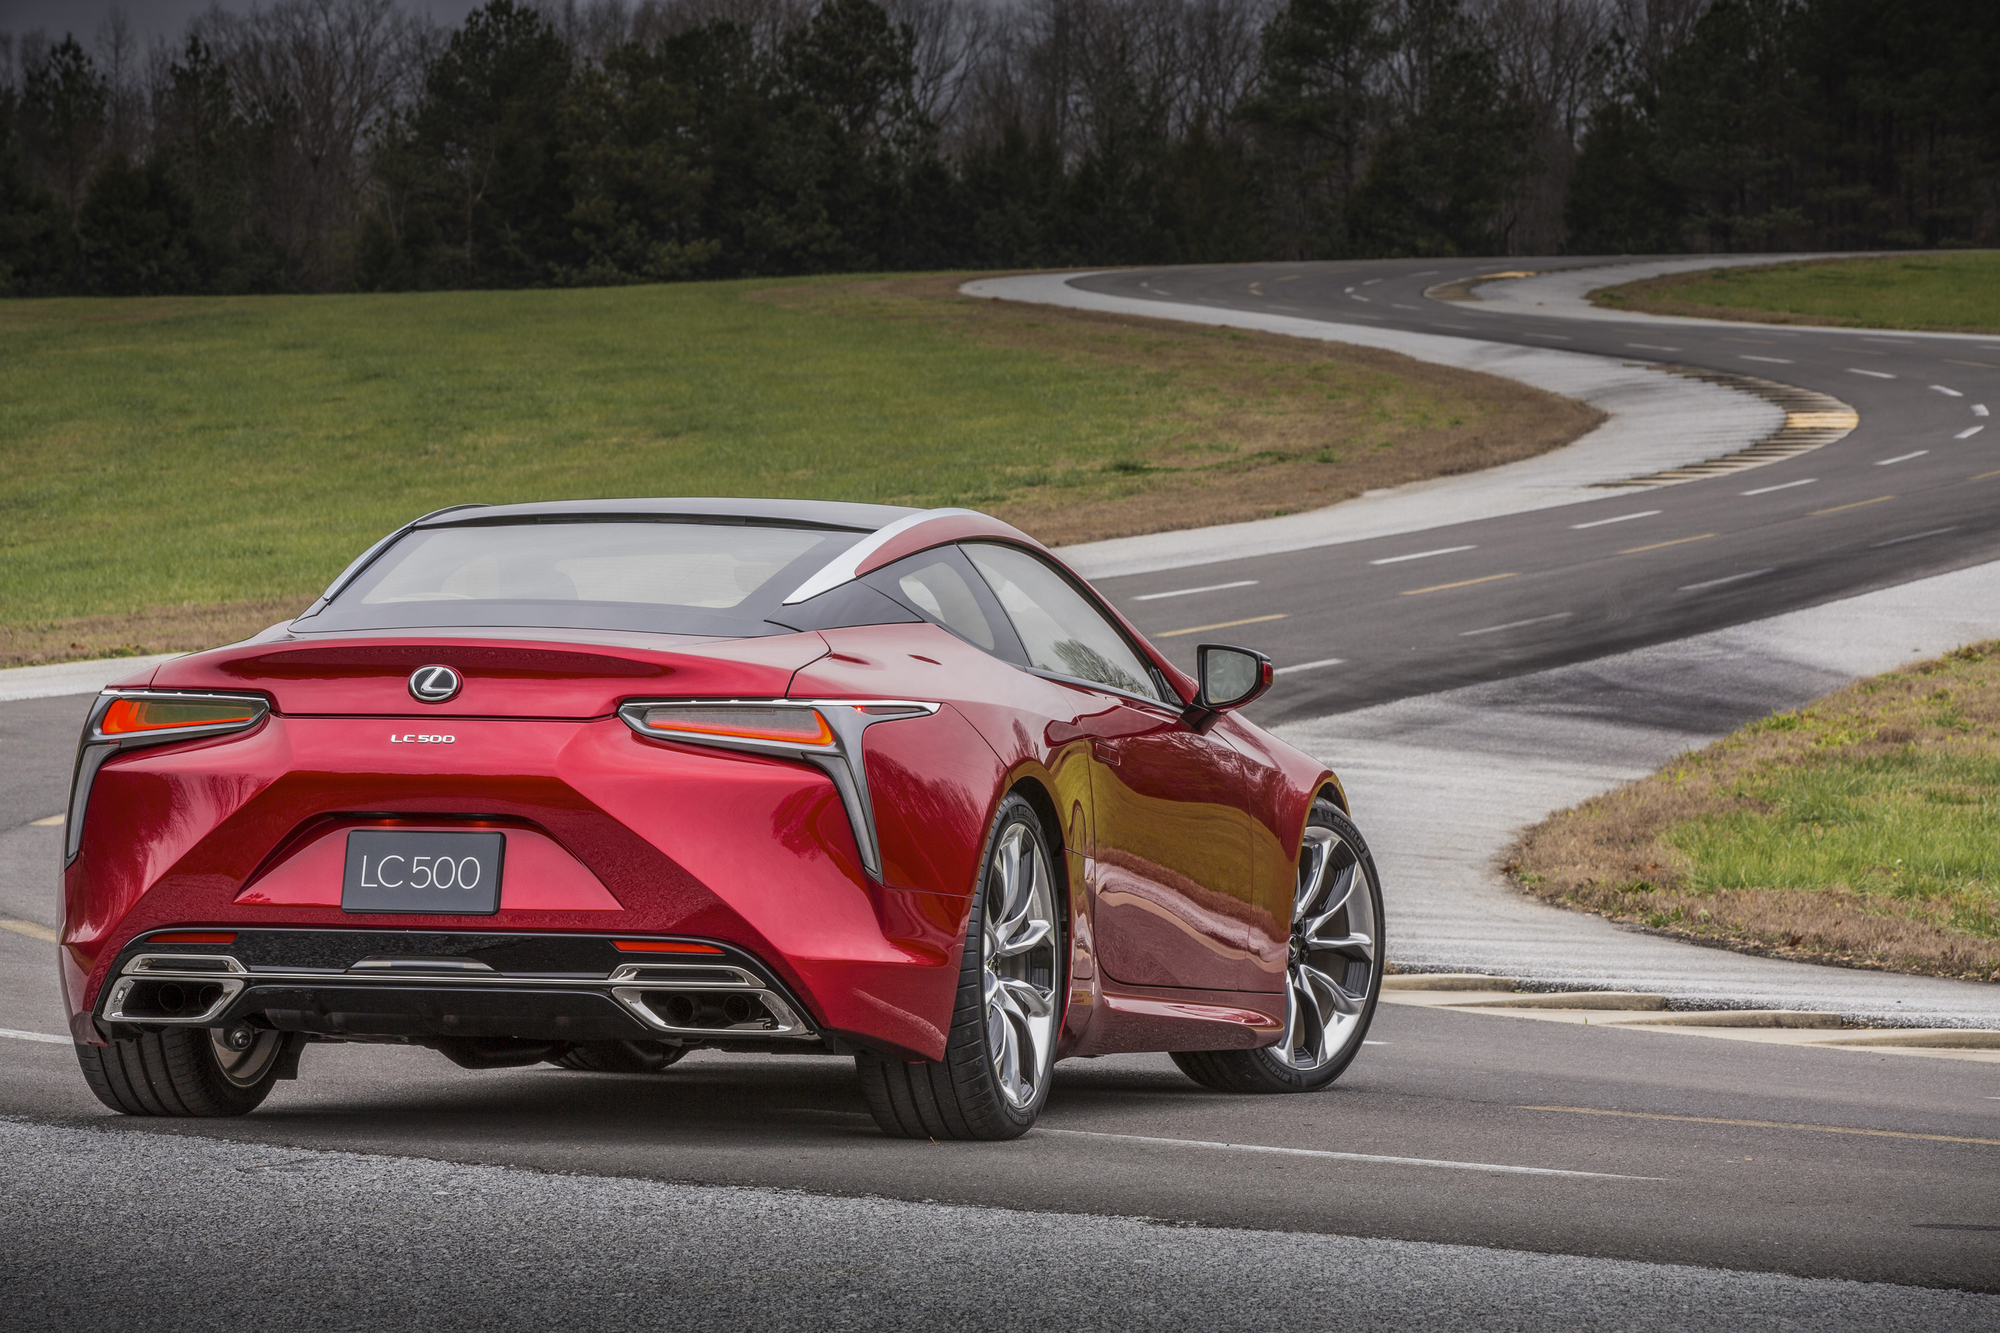 Lexus was able to include several cues from the LF-LC and mixed it up with the brand's familiar design features